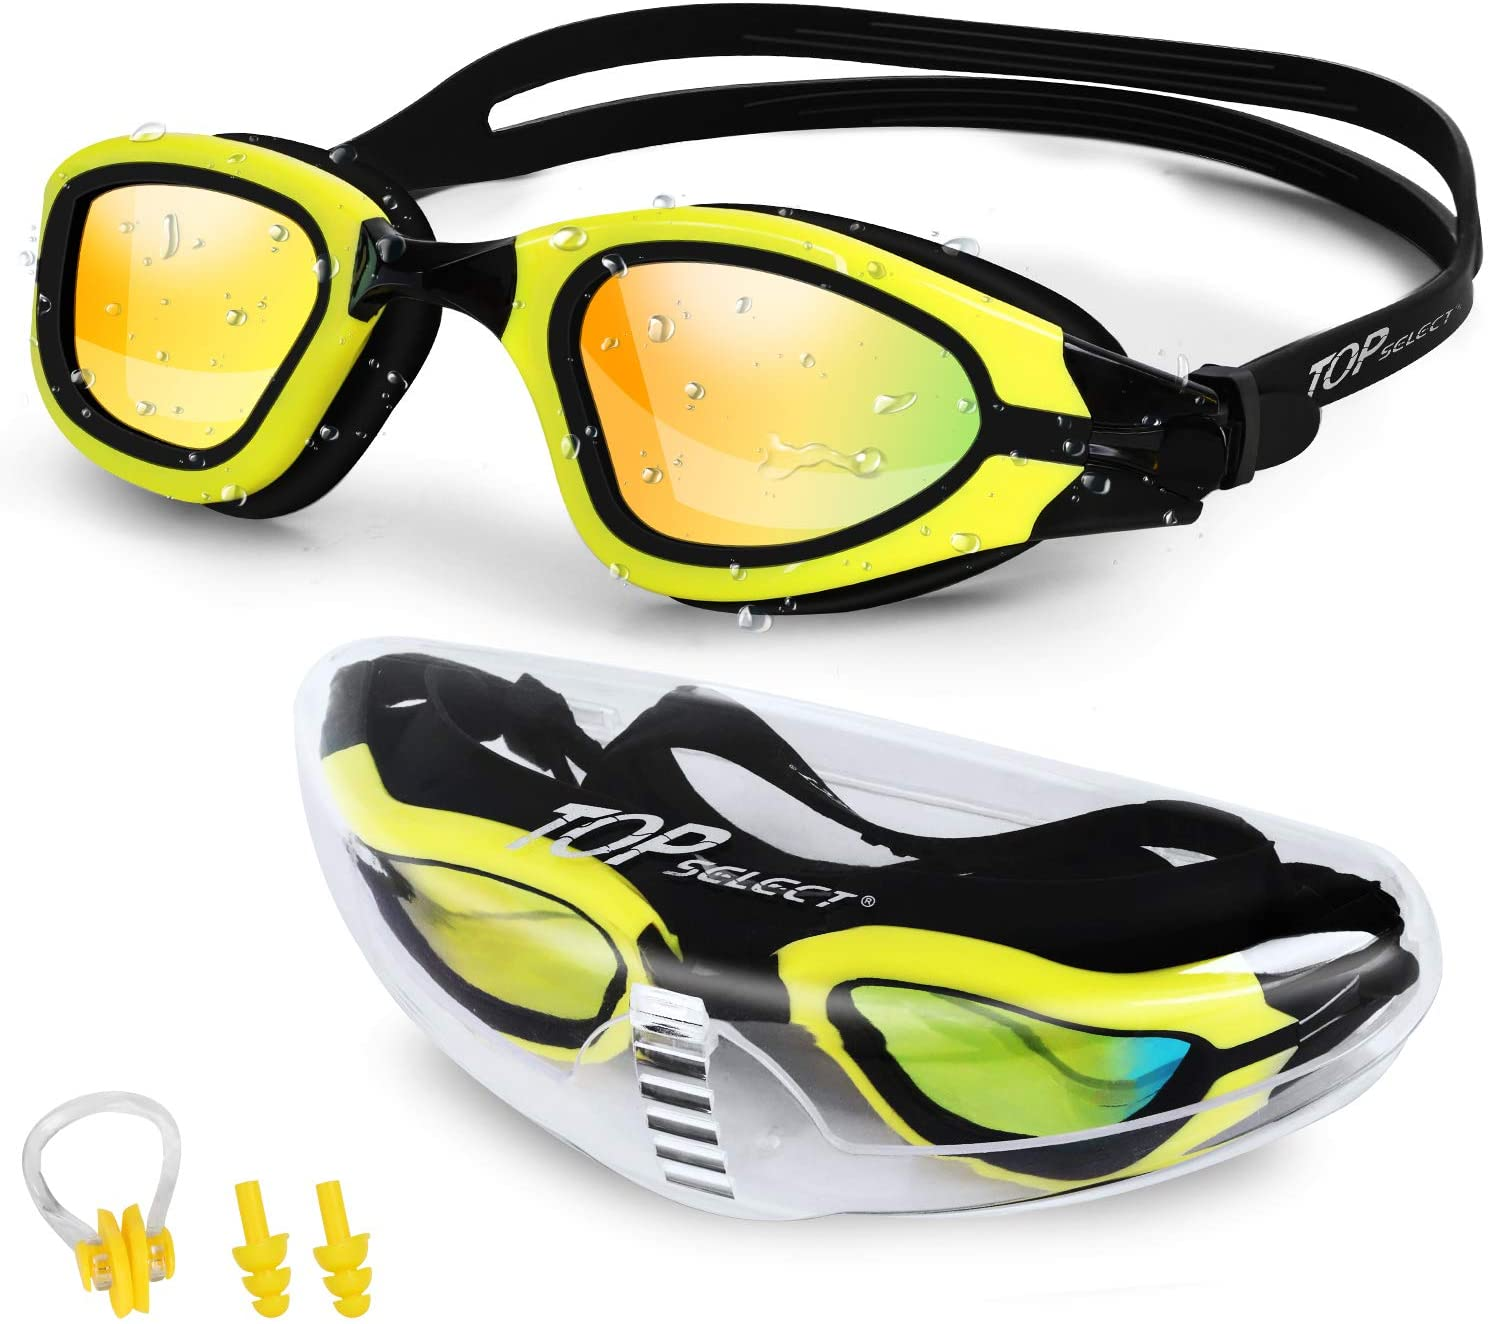 TopSelect Swimming Goggles Waterproof Clear Vision Polarized Anti Fog UV Protection No Leak Soft Silicone Frame and Strap for Men, Women, Boys, Girls,Youth.